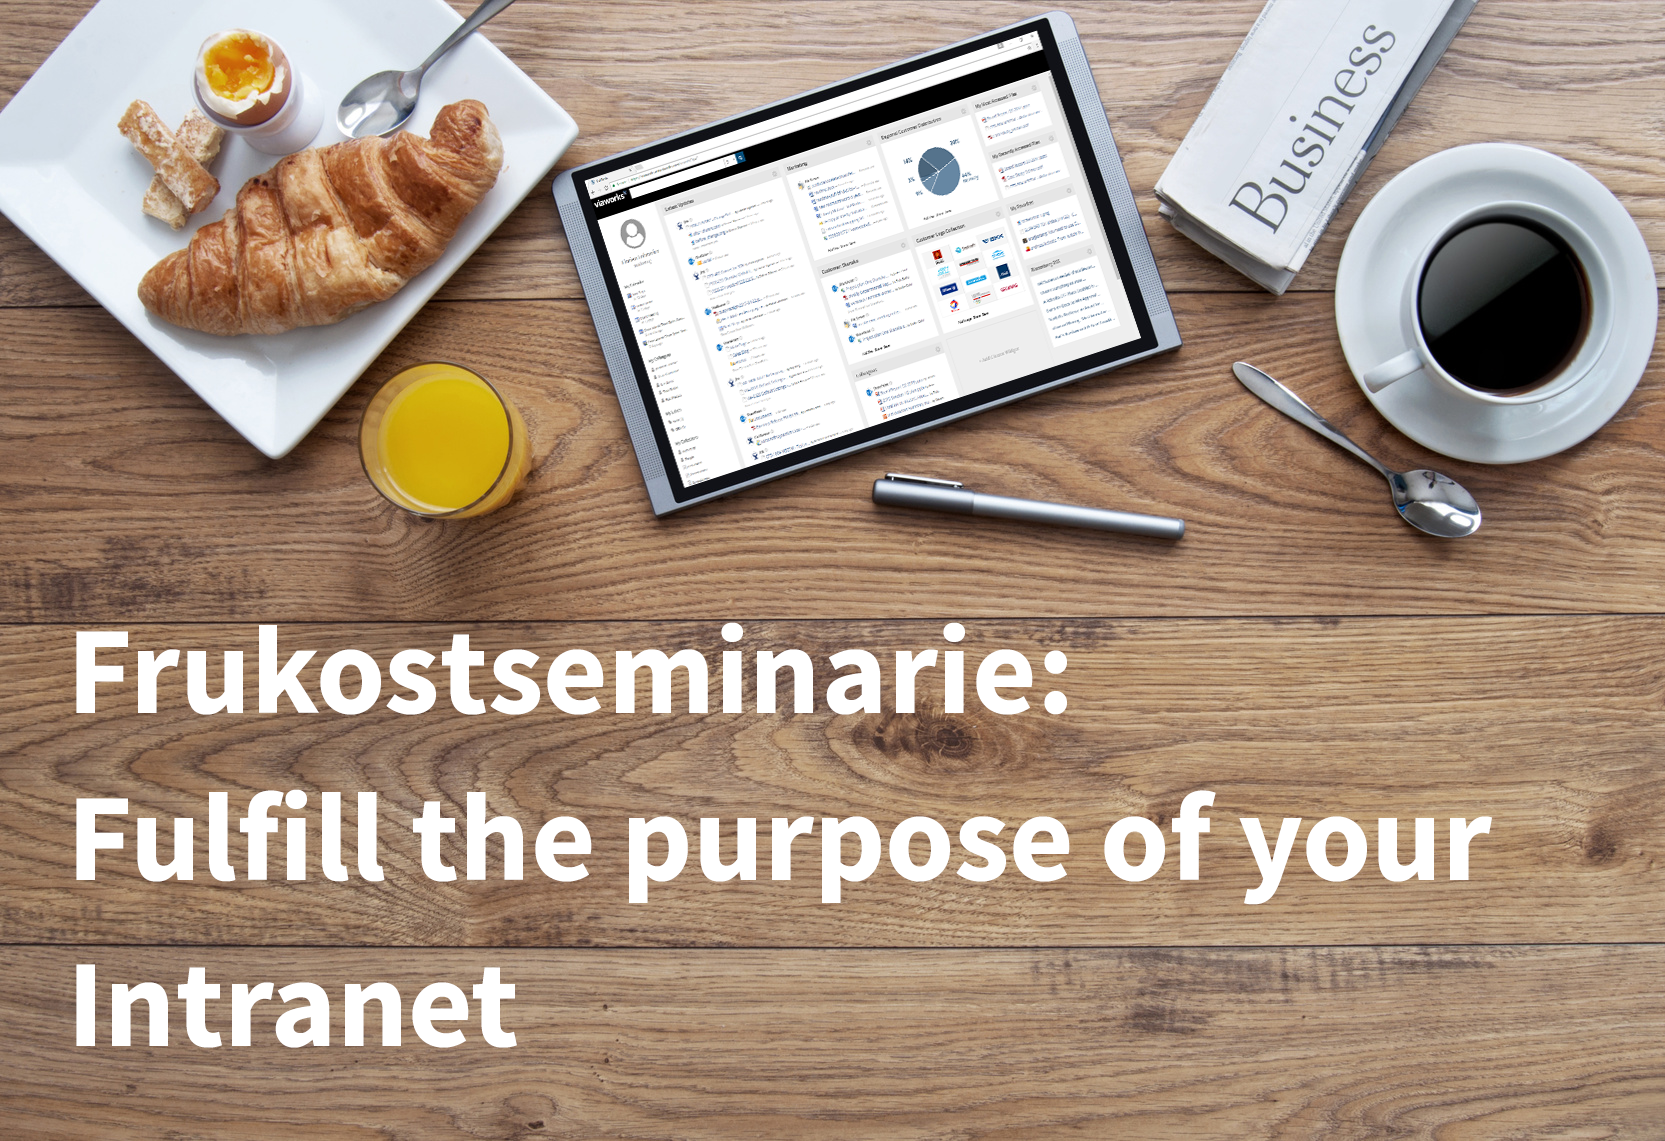 Frukostseminarie- Fulfill the purpose of your Intranet.png